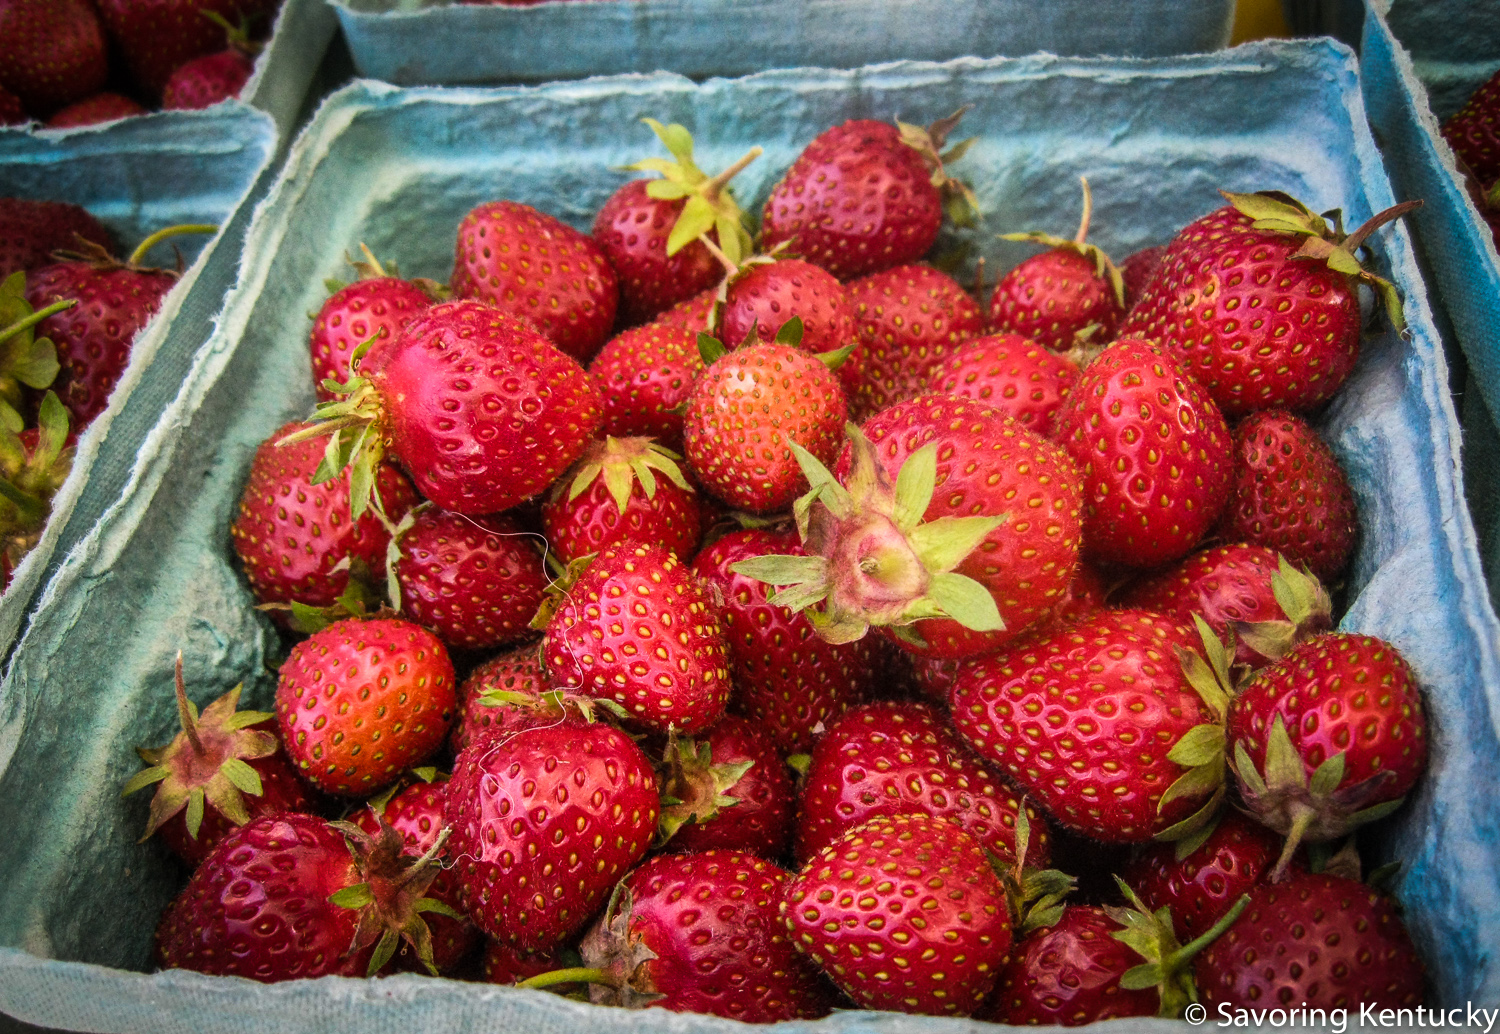 Organic strawberries, Elmwood Stock Farm, Lexington Farmers Market.